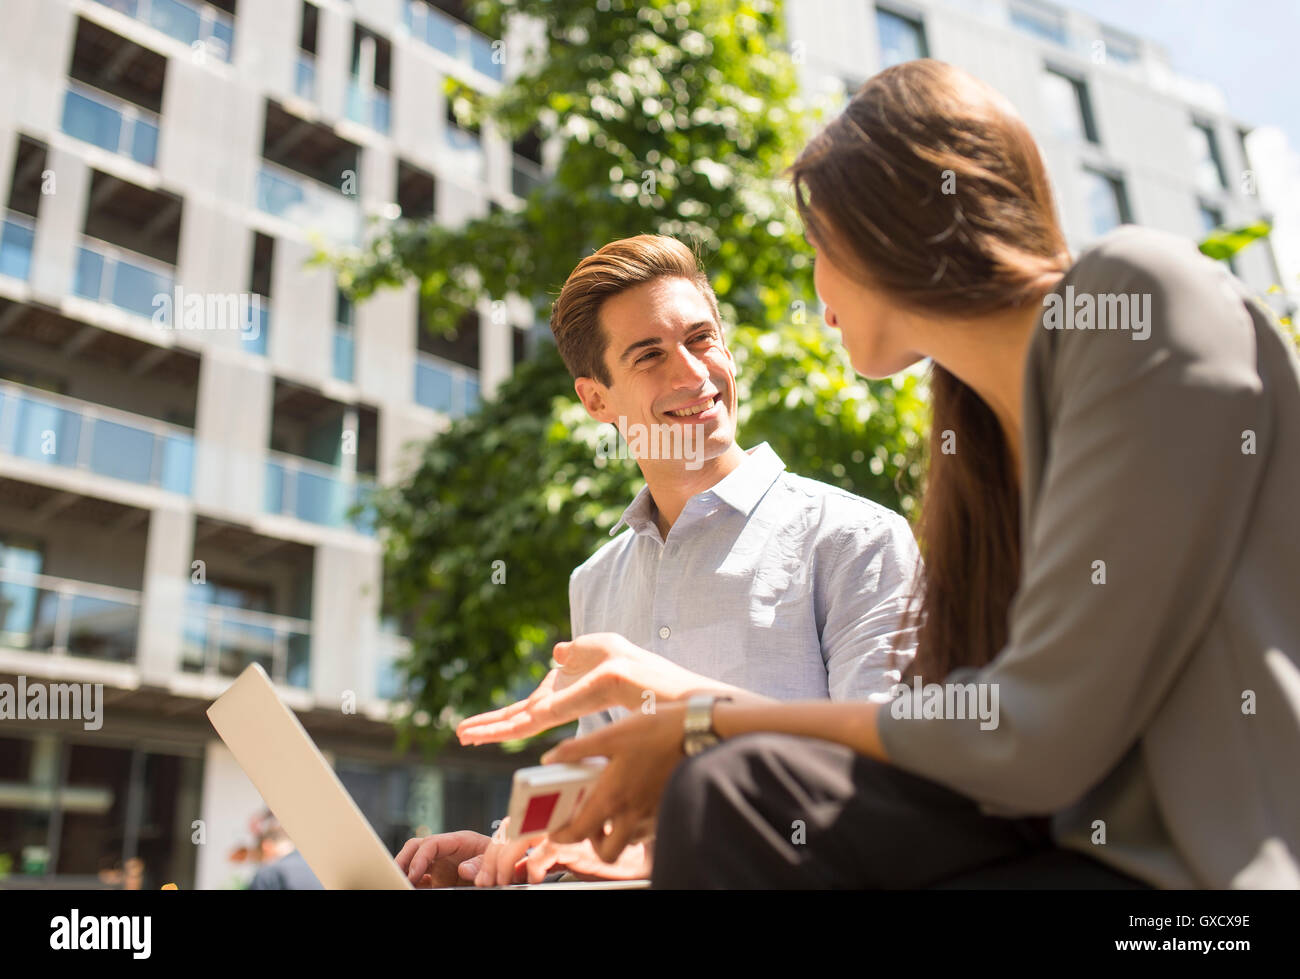 Young businesswoman and man using laptop and chatting, London, UK Stock Photo